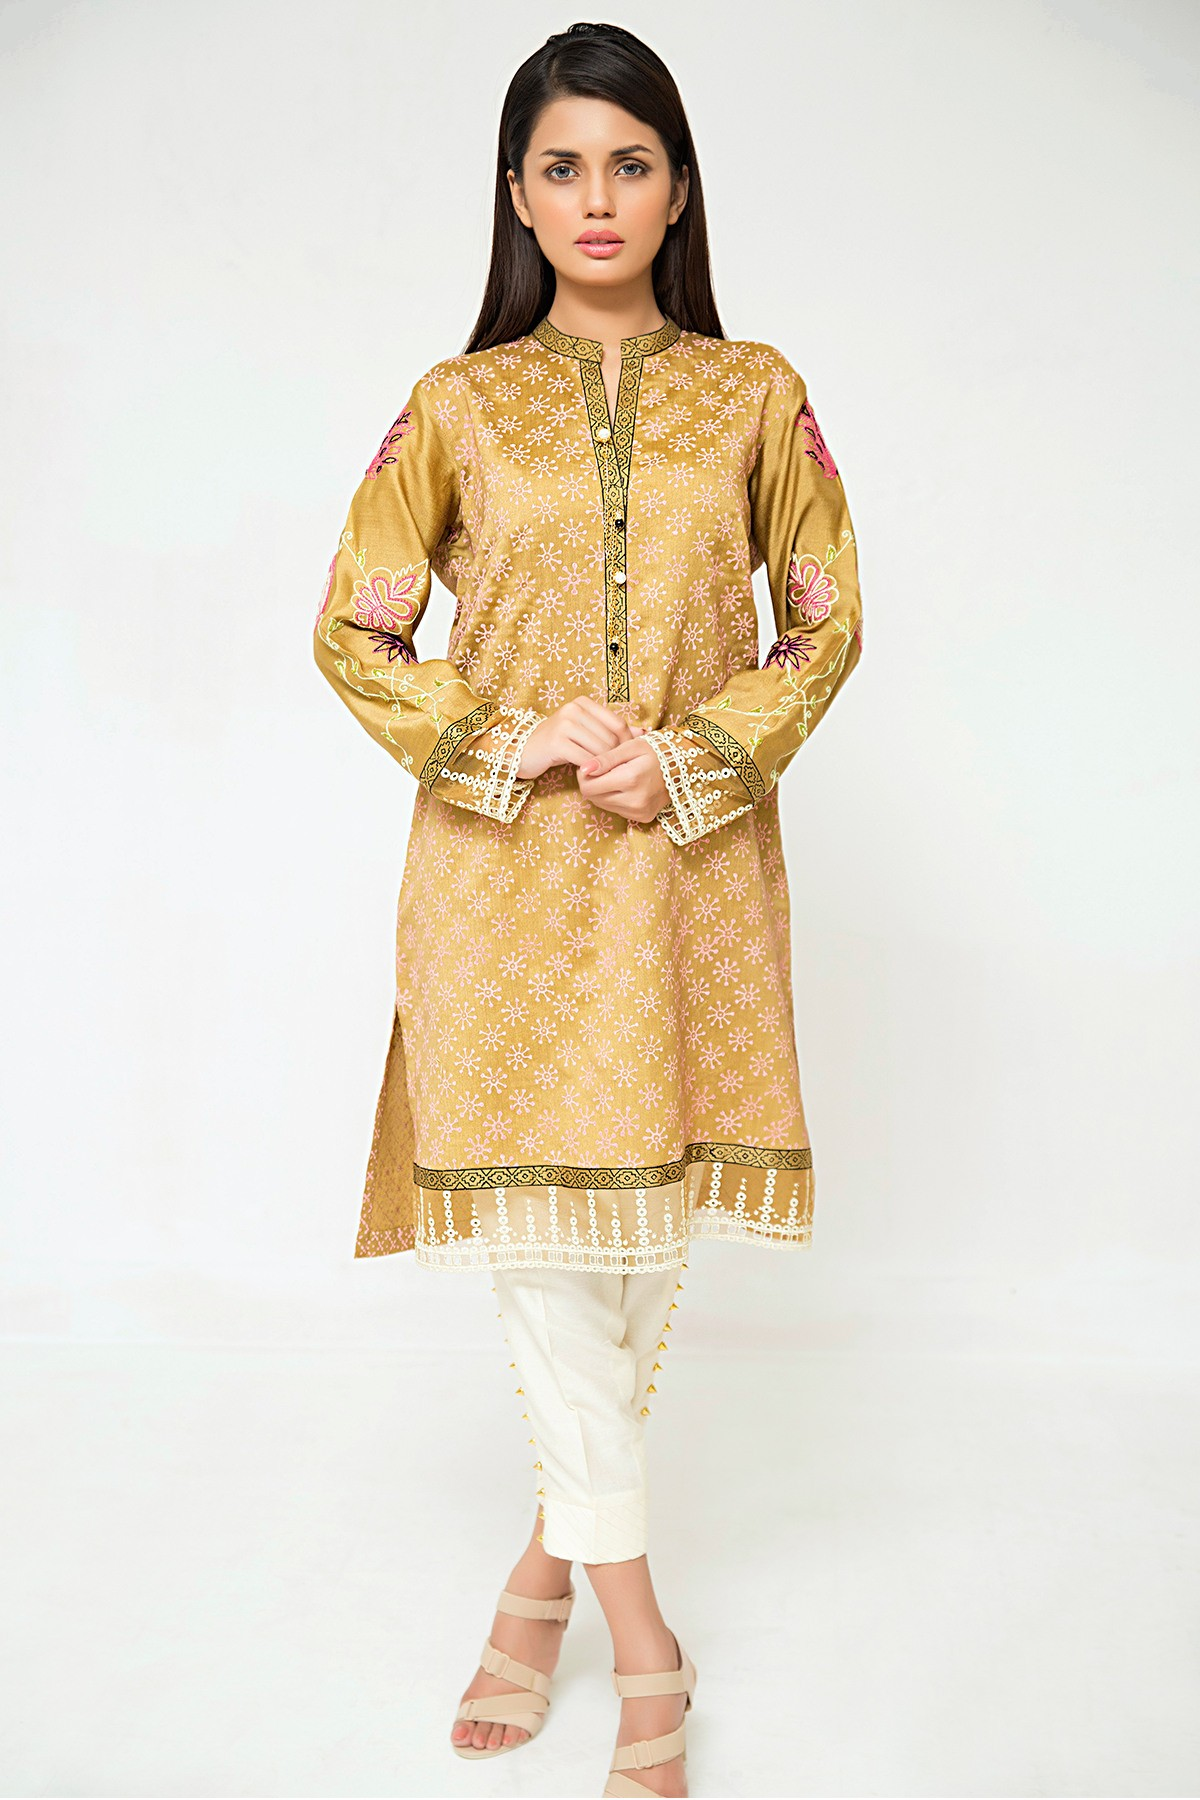 Alluring Bronze Gold Eid Attire by Sana Abbas